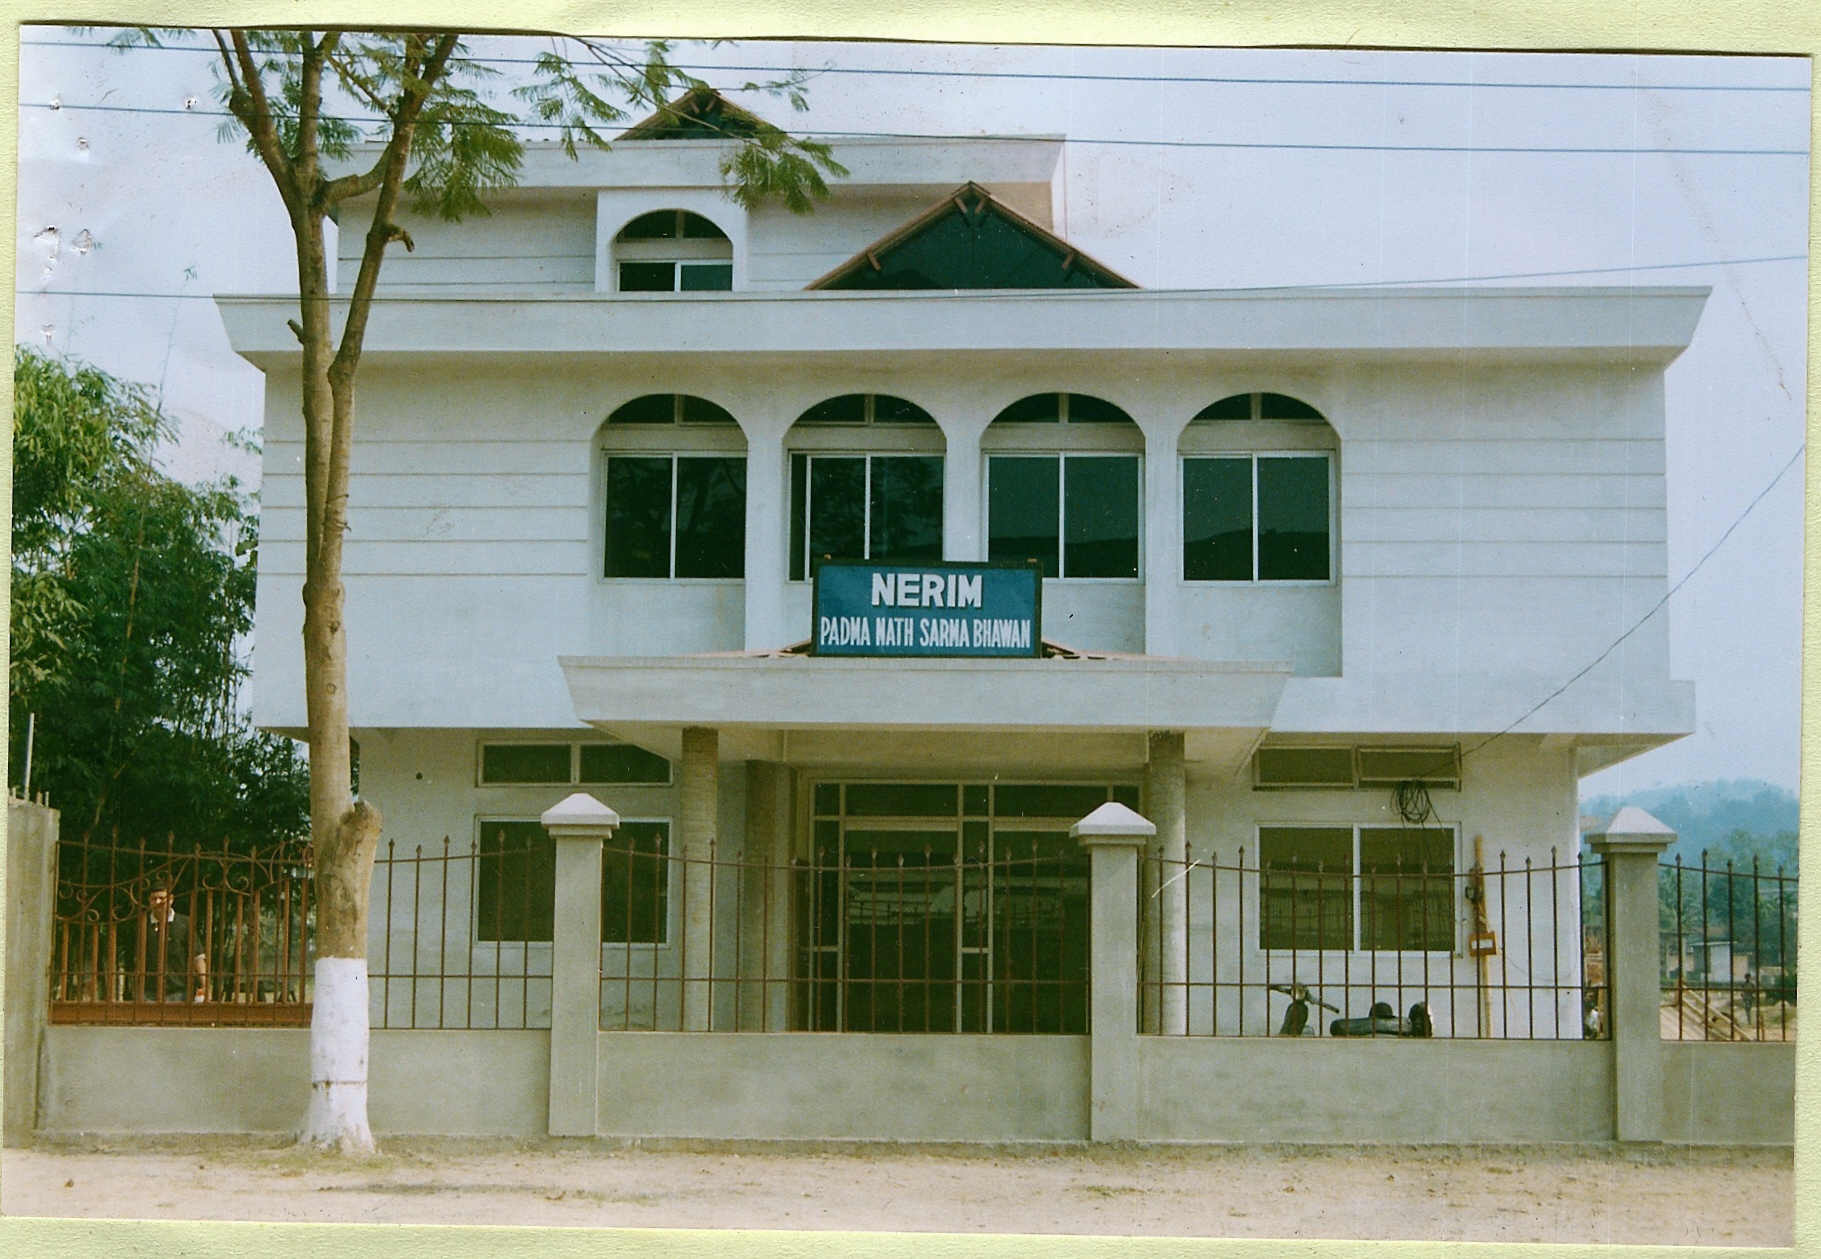 Master Of Social Work (MSW) Admission 2015, NERIM , Guwahati